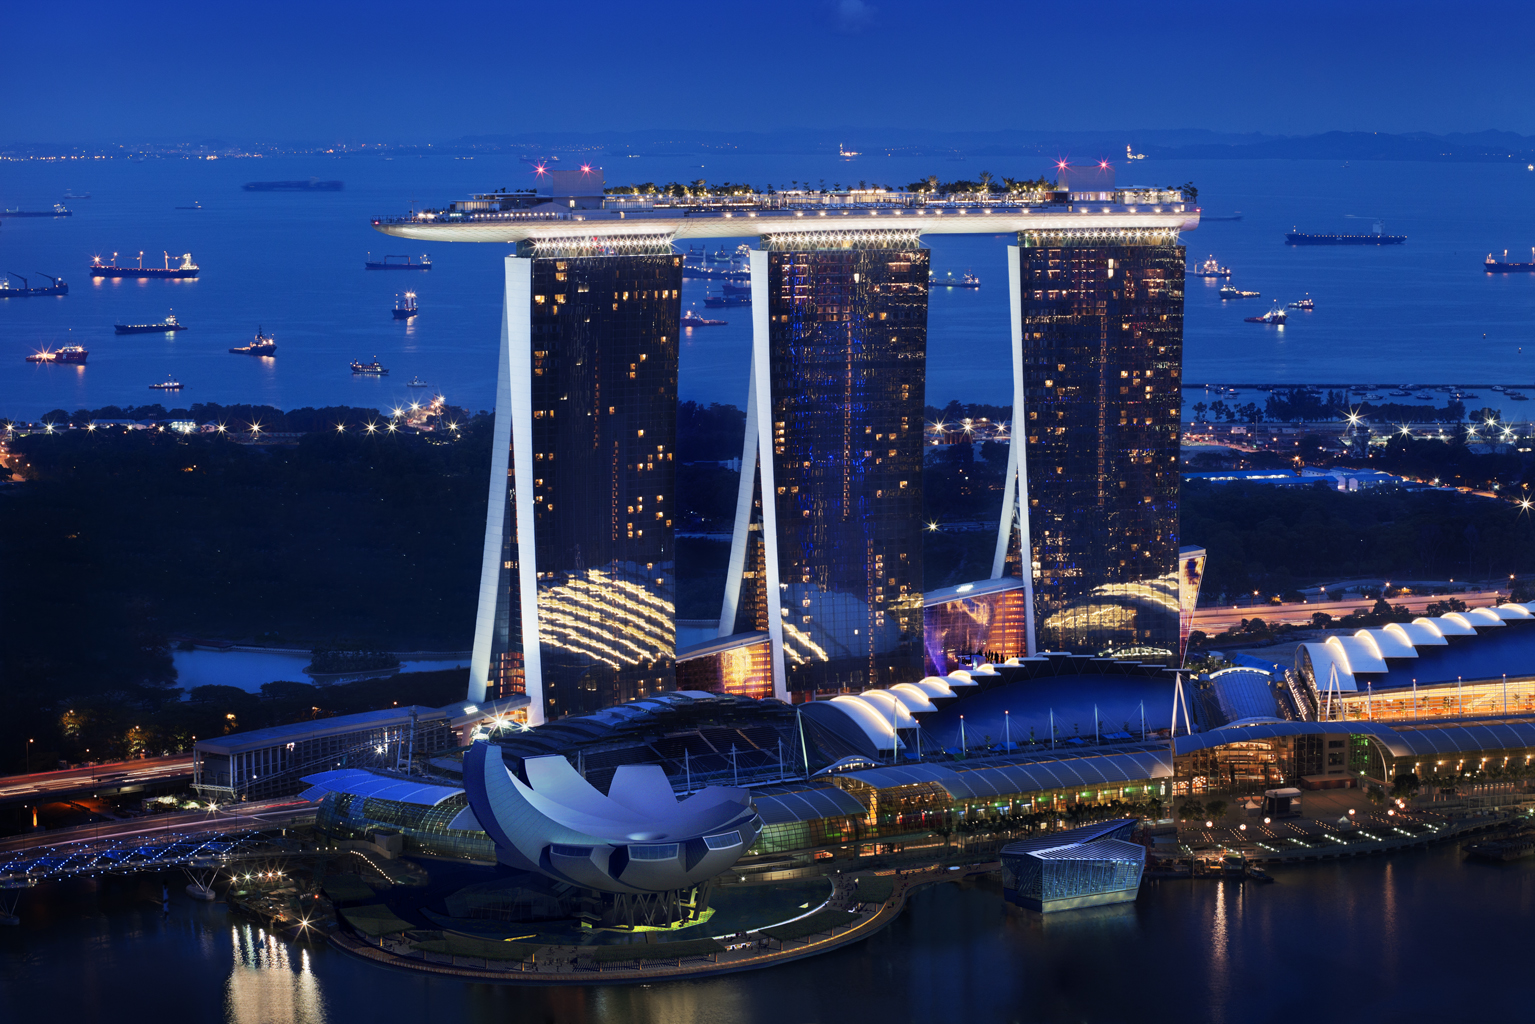 Marina Bay Sands_credits to STB